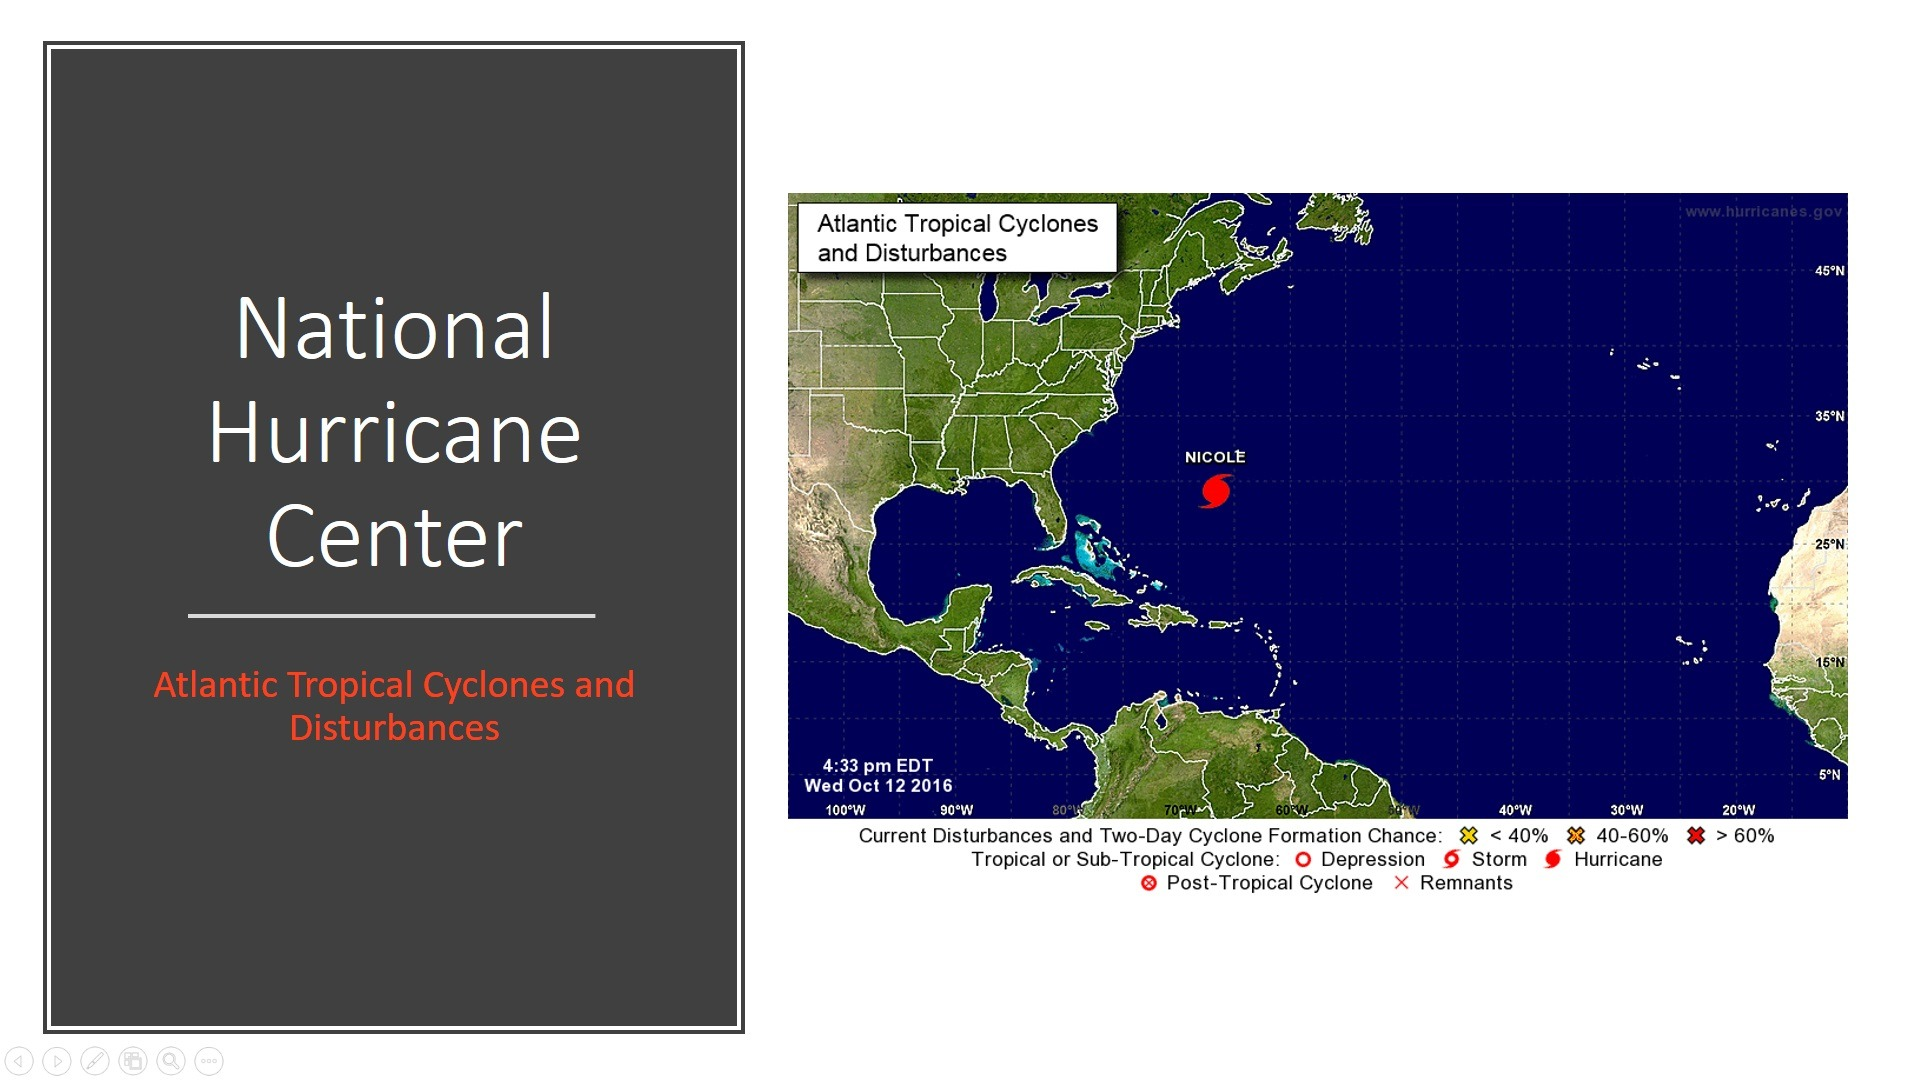 live hurricane information display system in powerpoint